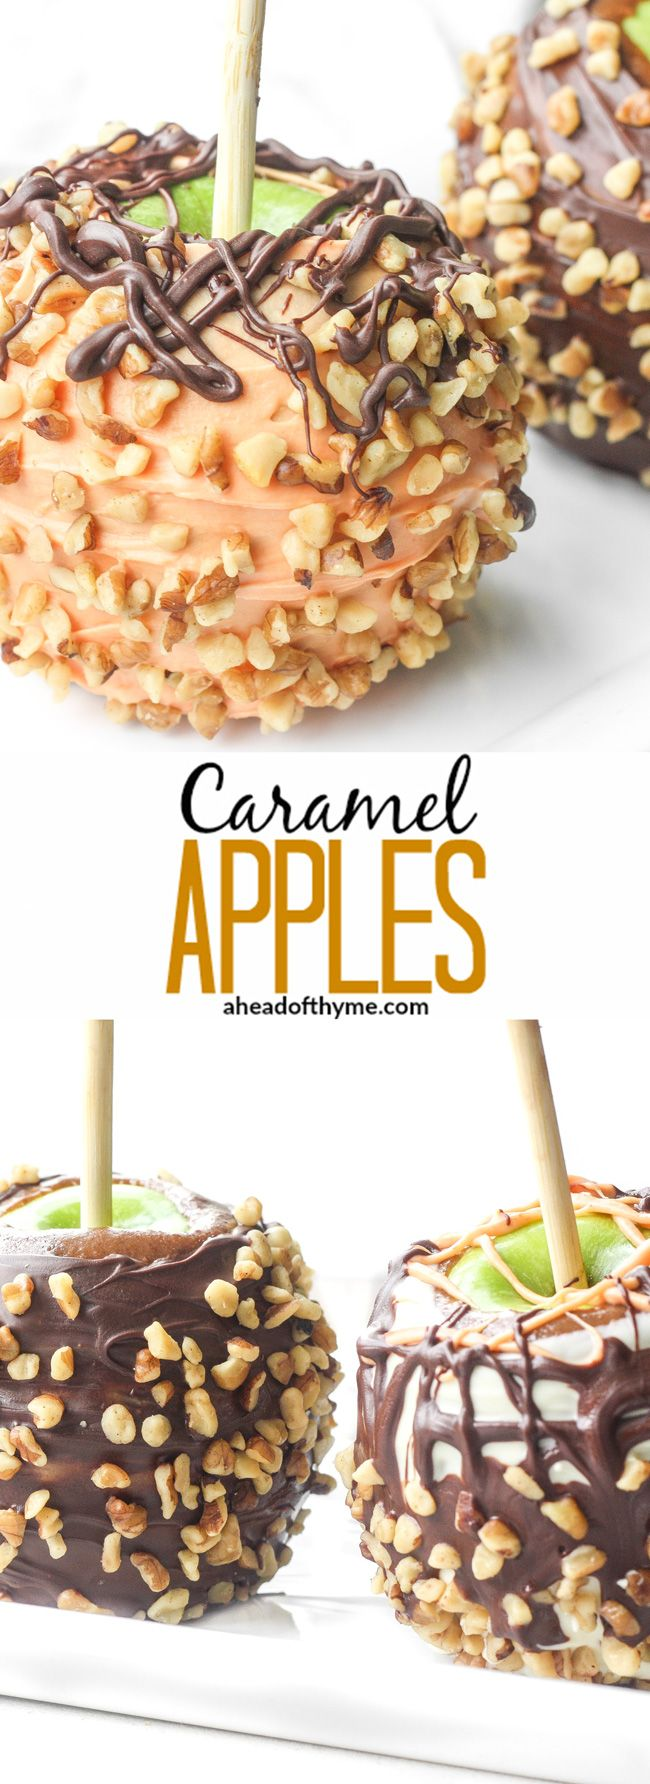 halloween candy apple ideas 121 best caramel apple recipes u0026 ideas images on pinterest - Gourmet Halloween Recipes